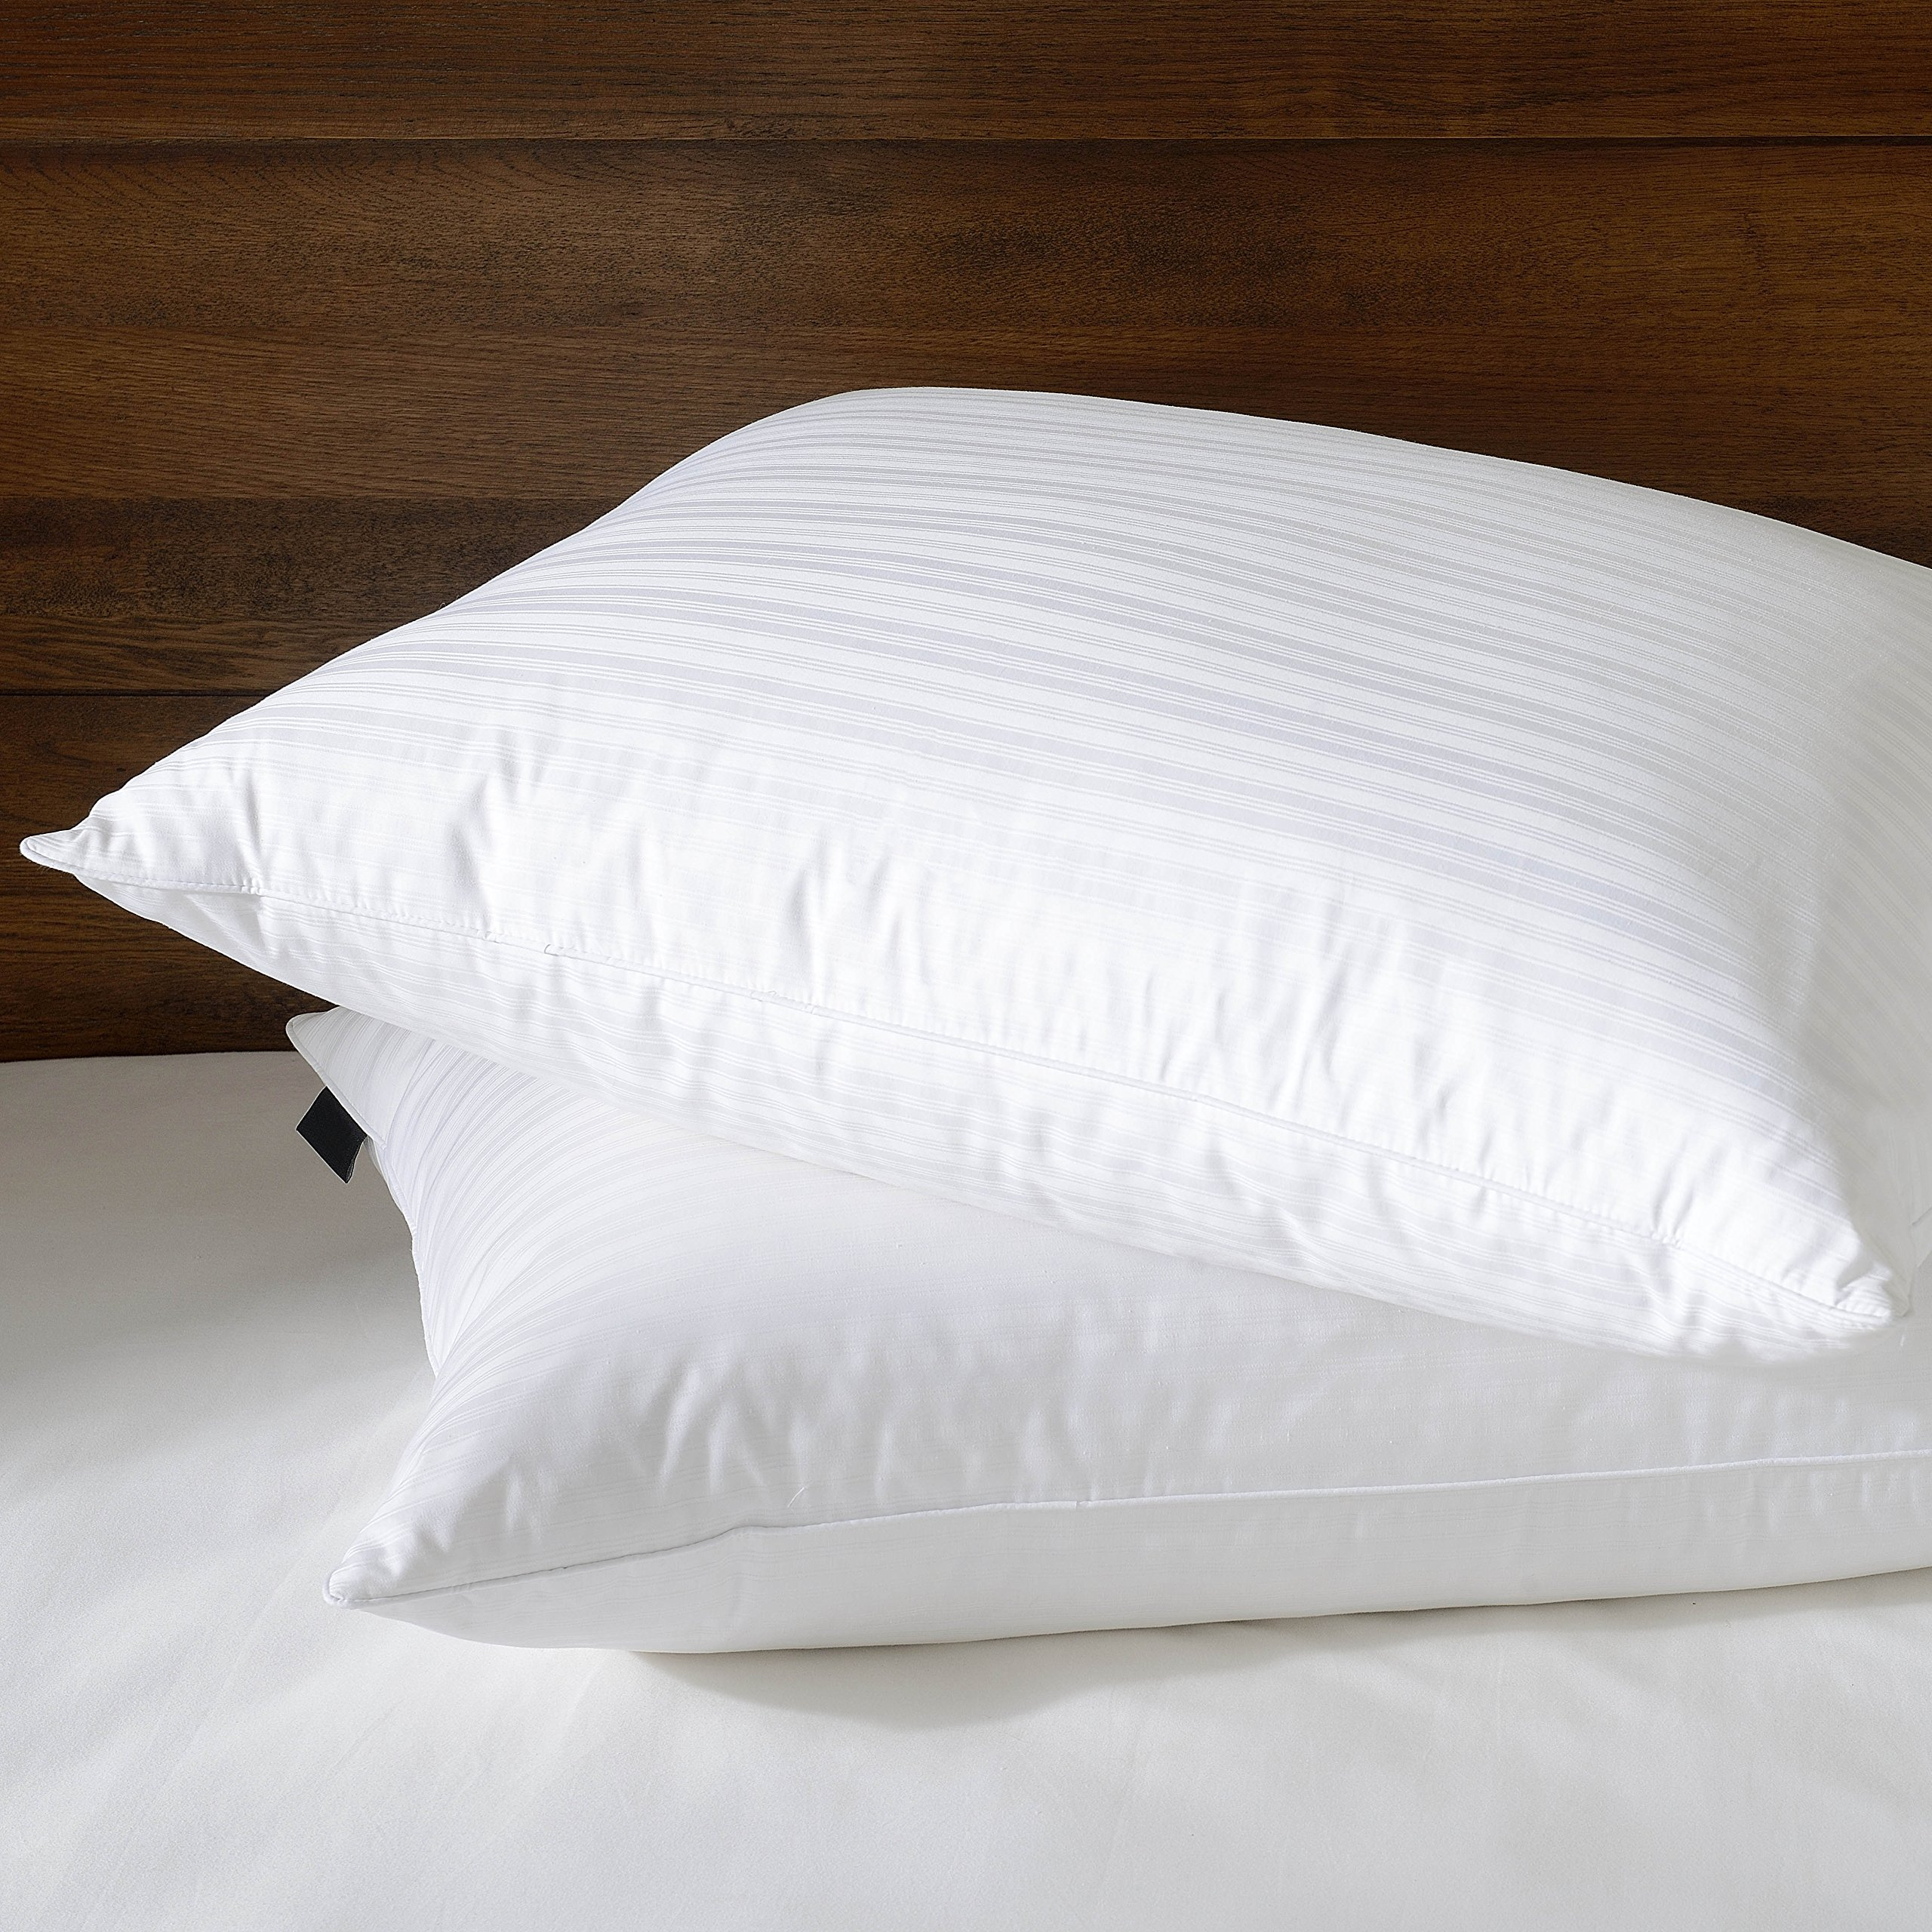 pillows pillow bed product